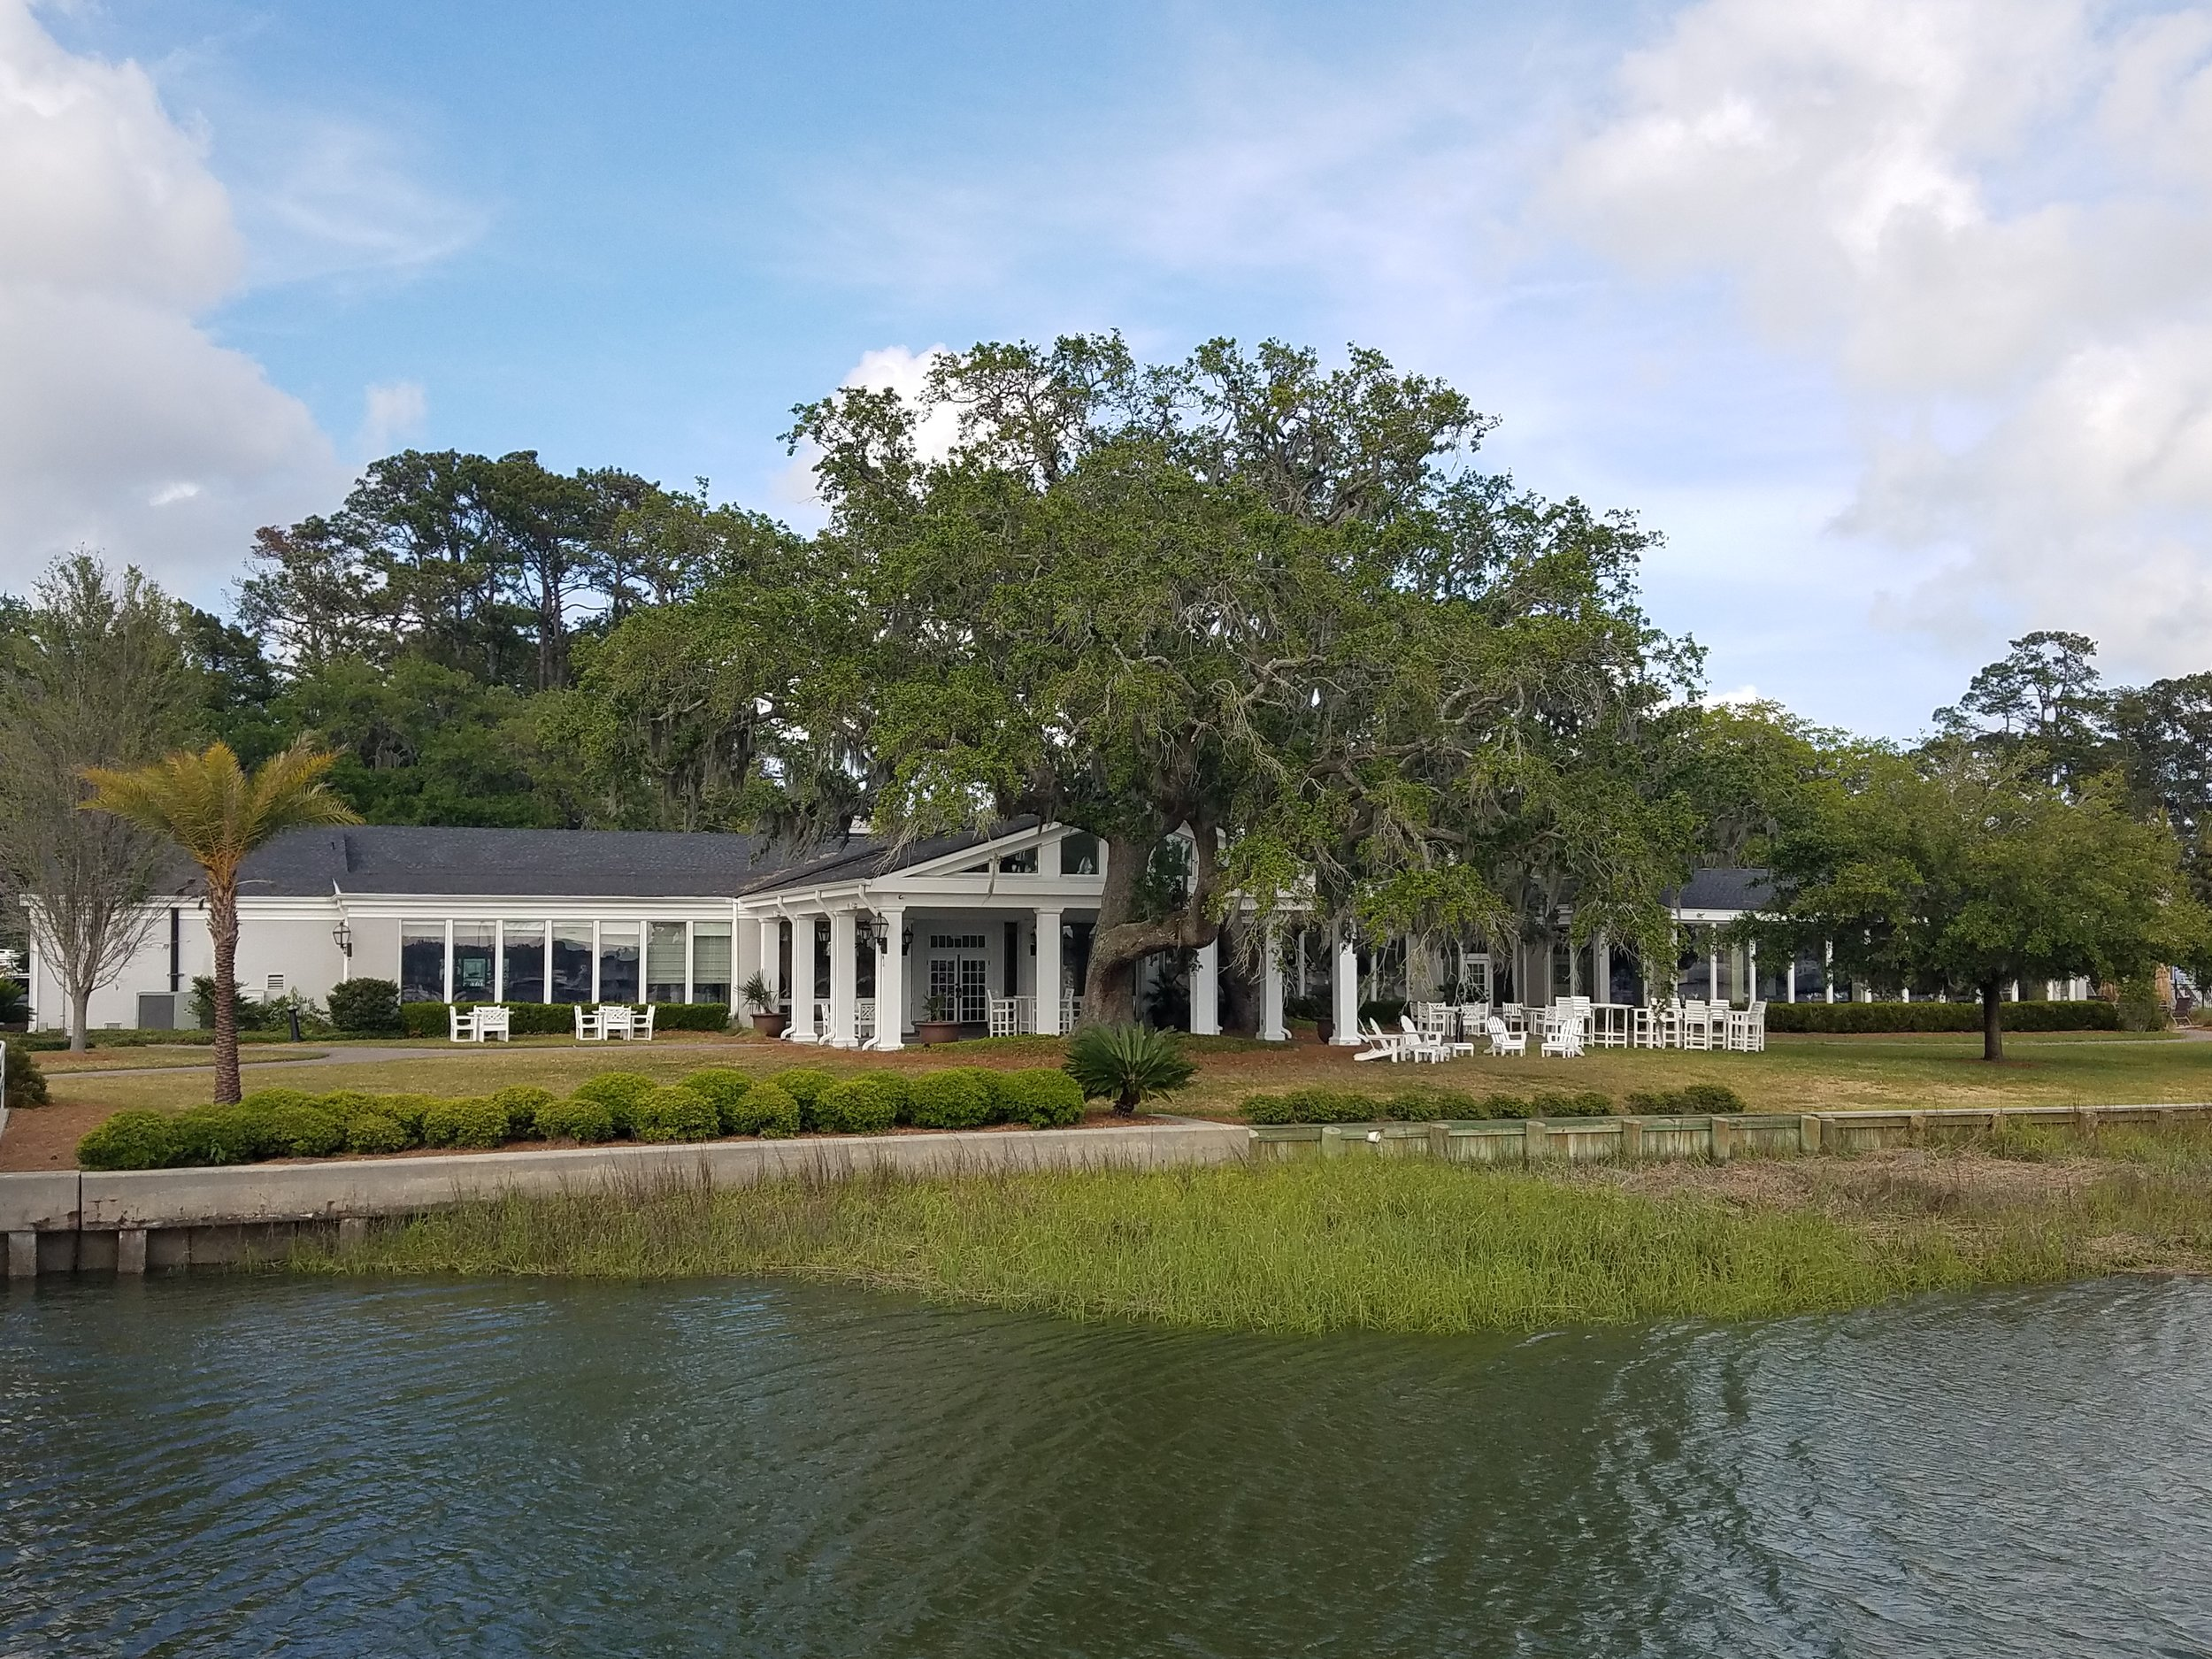 The Savannah Yacht Club club house